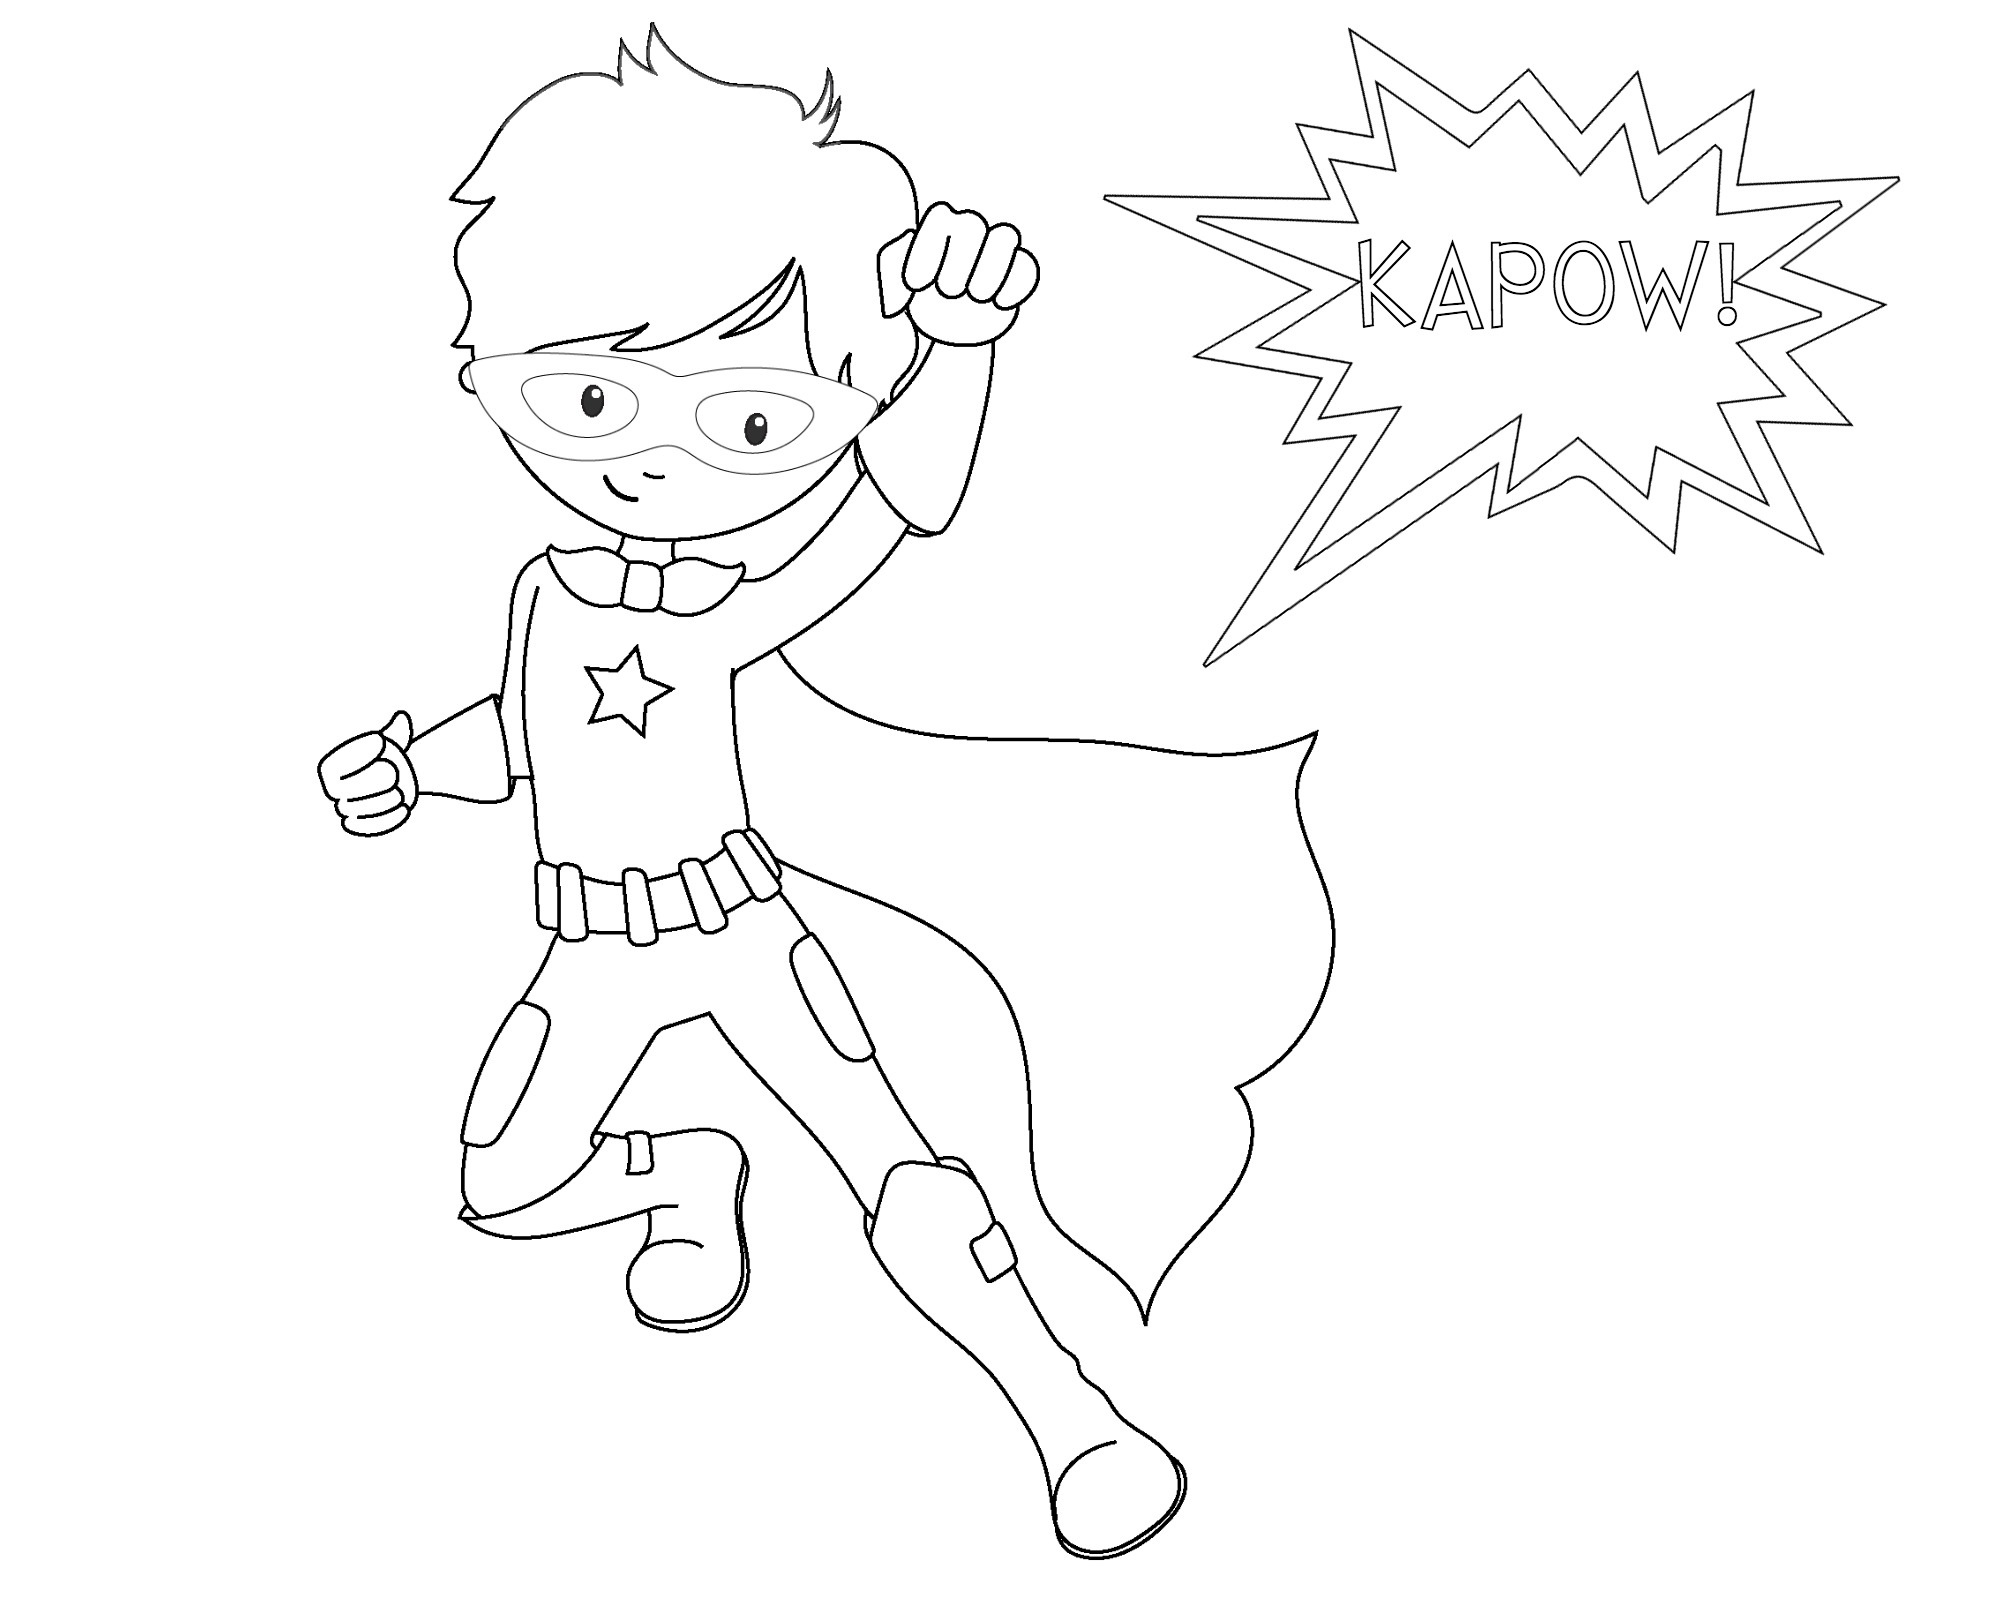 Coloring Pages : Coloring Pictures Ofheroes Black In The Biblehero4 - Free Printable Superhero Coloring Pages